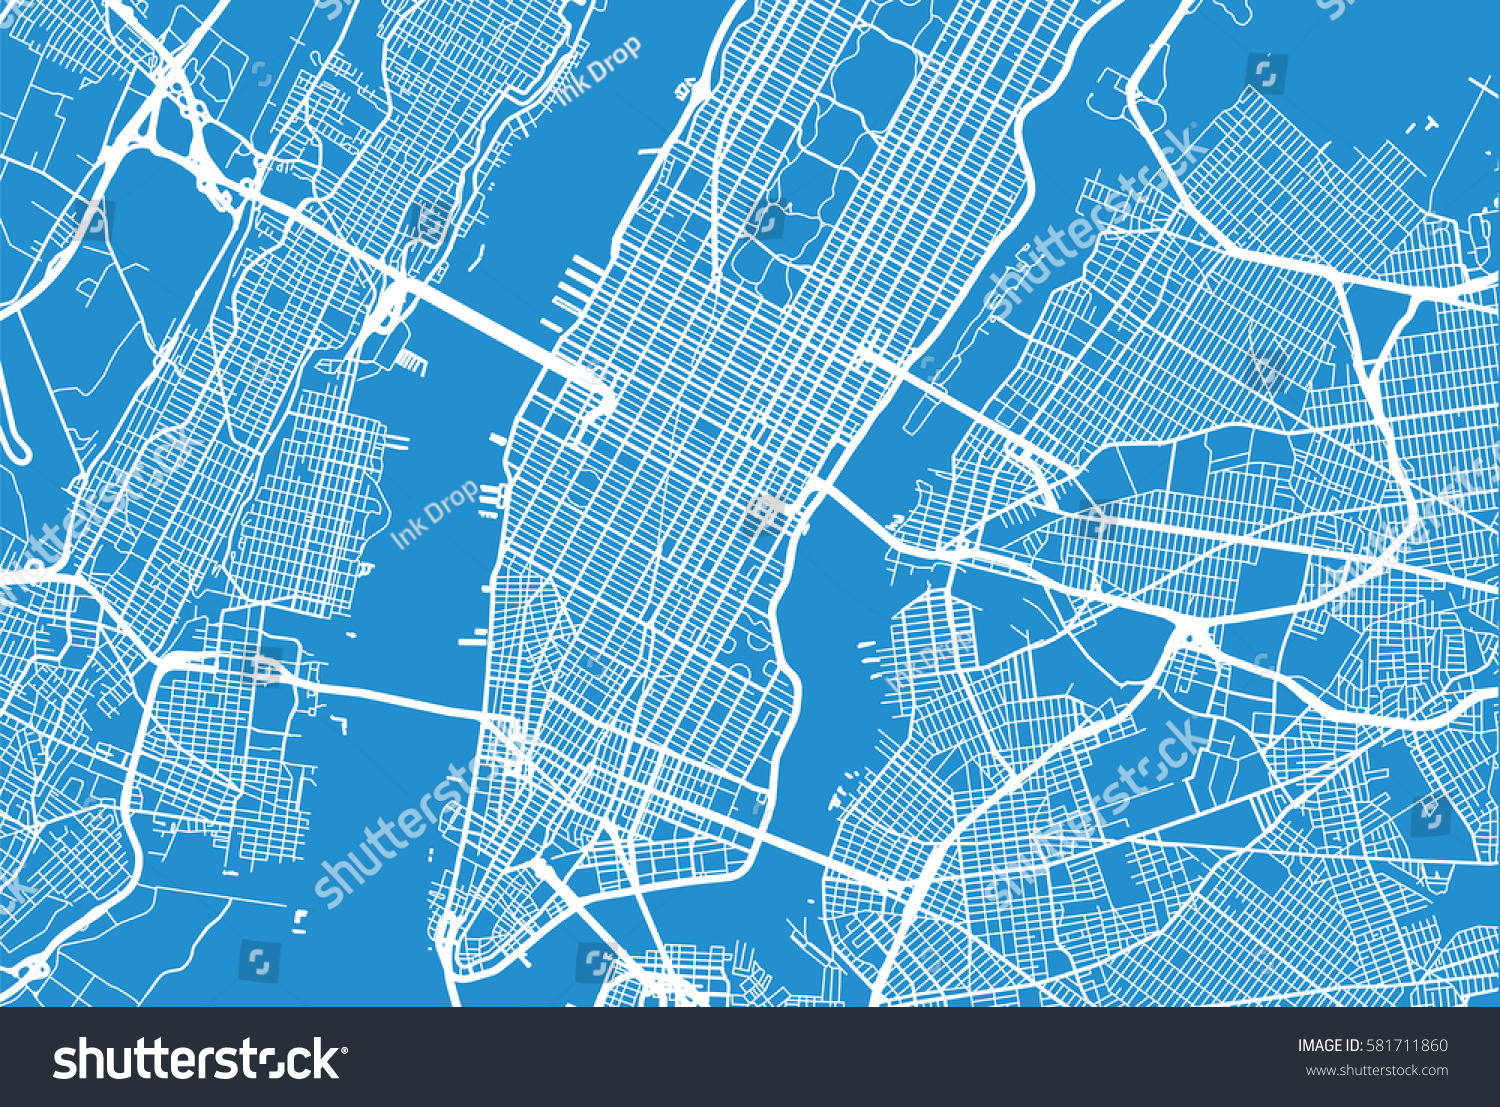 new york city vector map stock vector 581711860 shutterstock new york city victory parade of 1946 youtube new york city victory parade of 1946 youtube